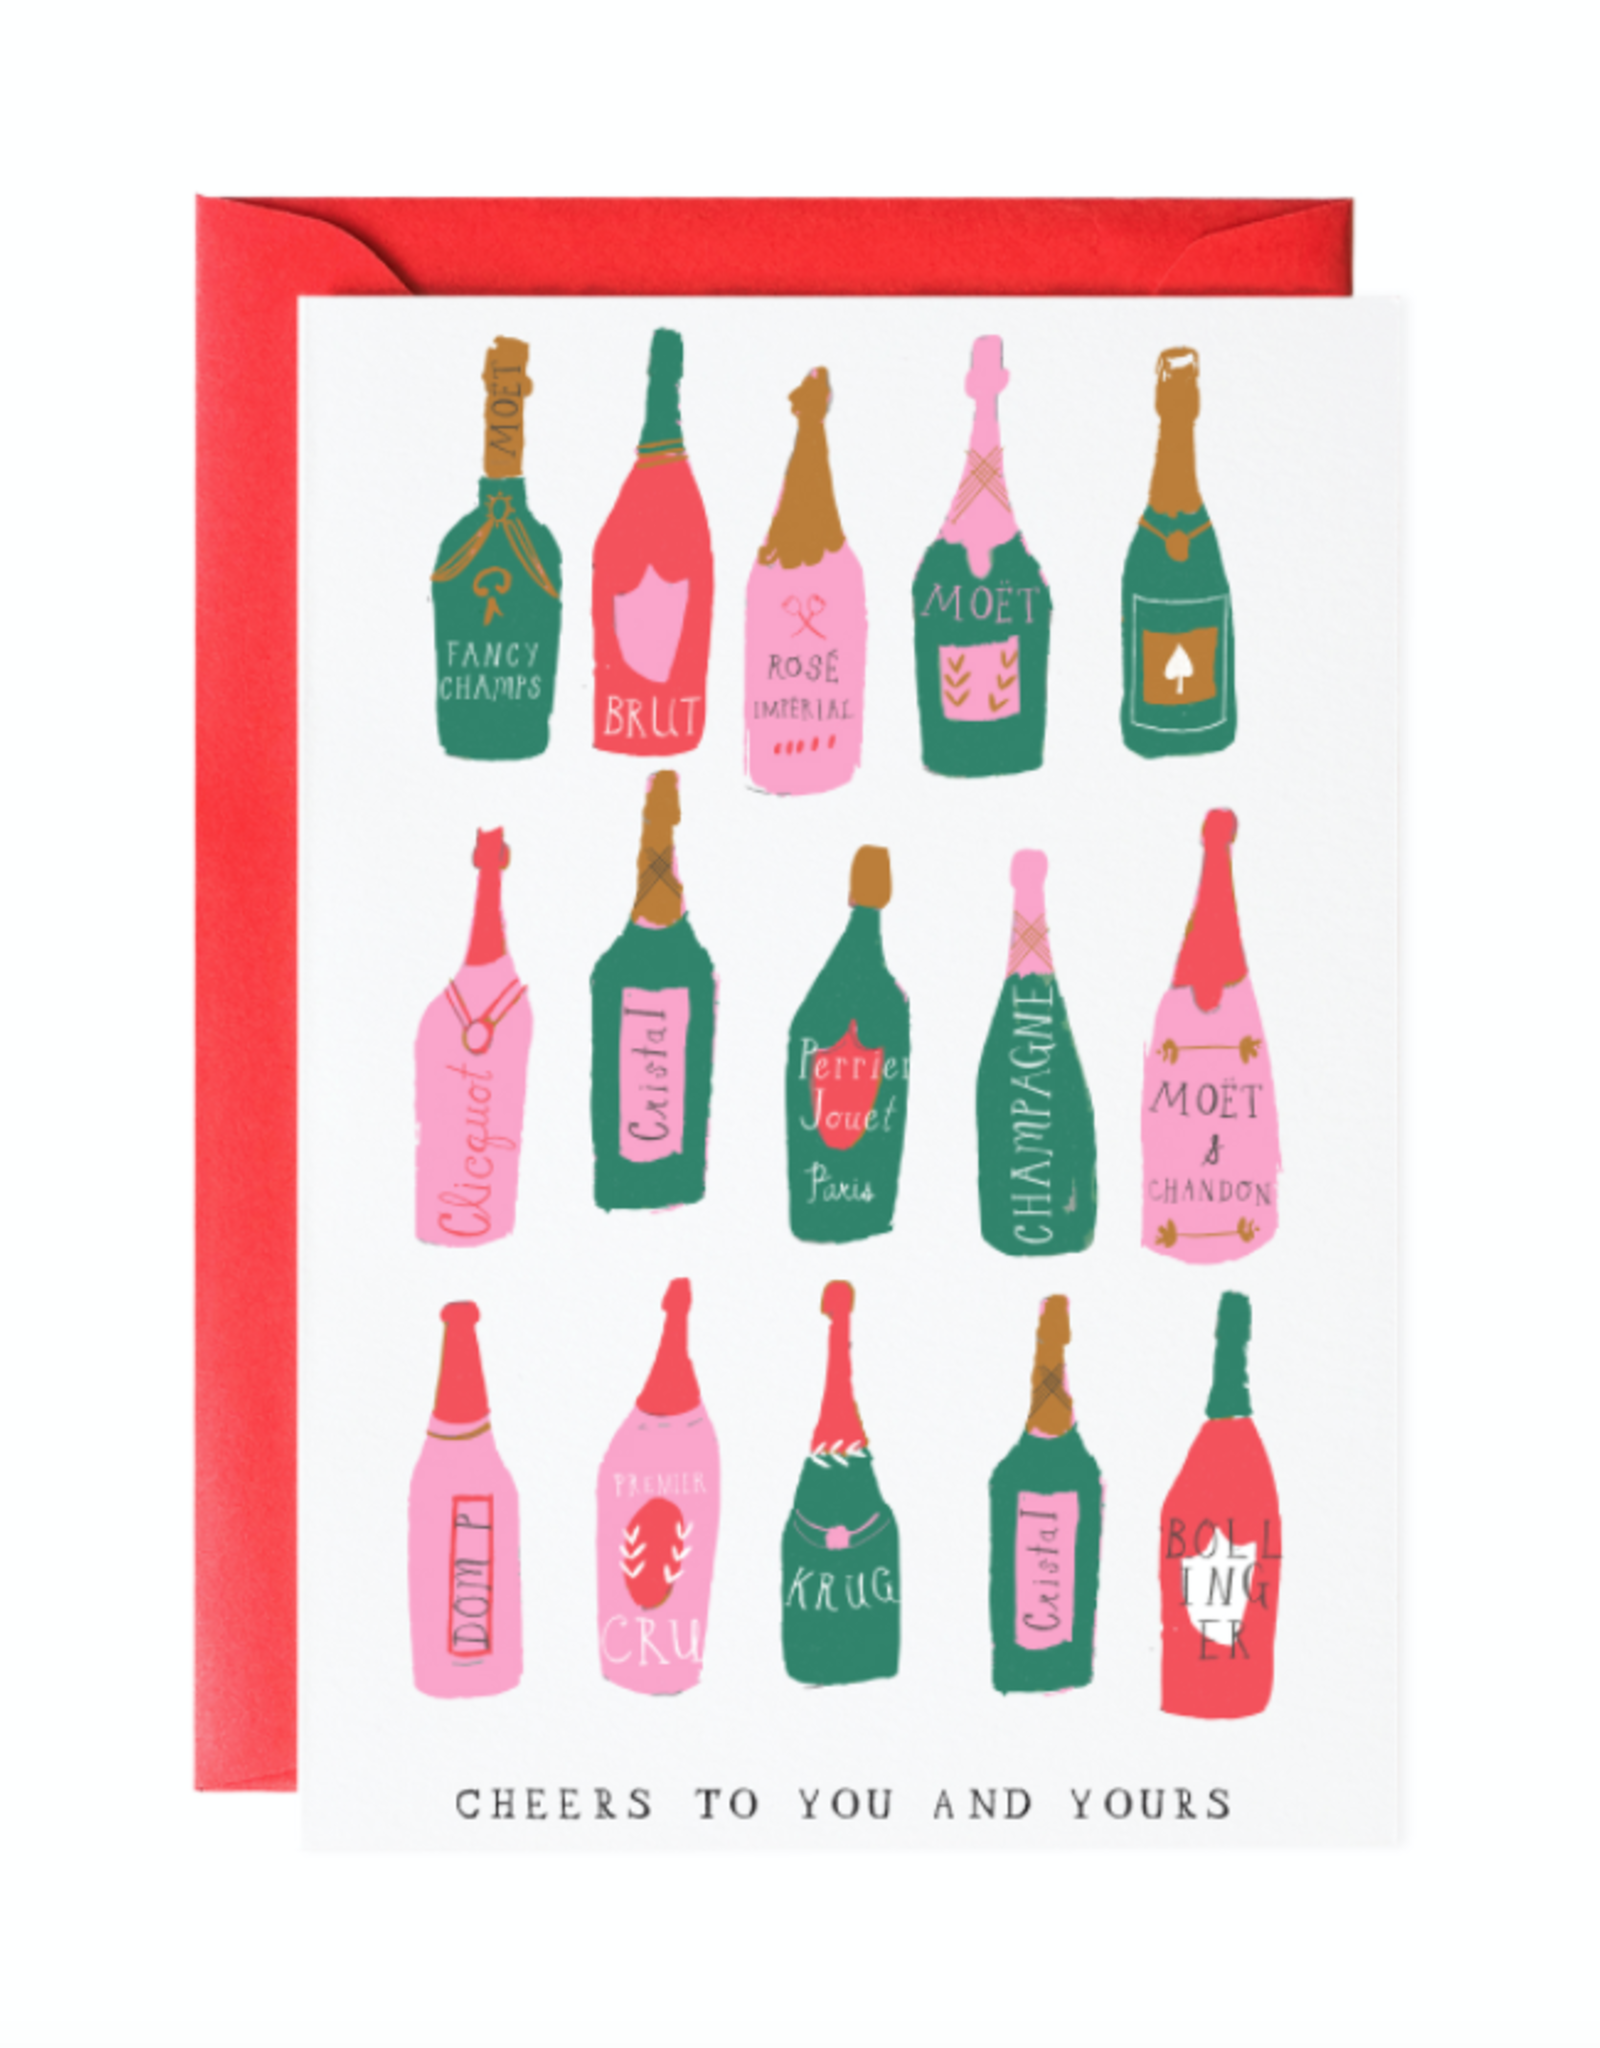 Let's Make a Toast Holiday Greeting Card